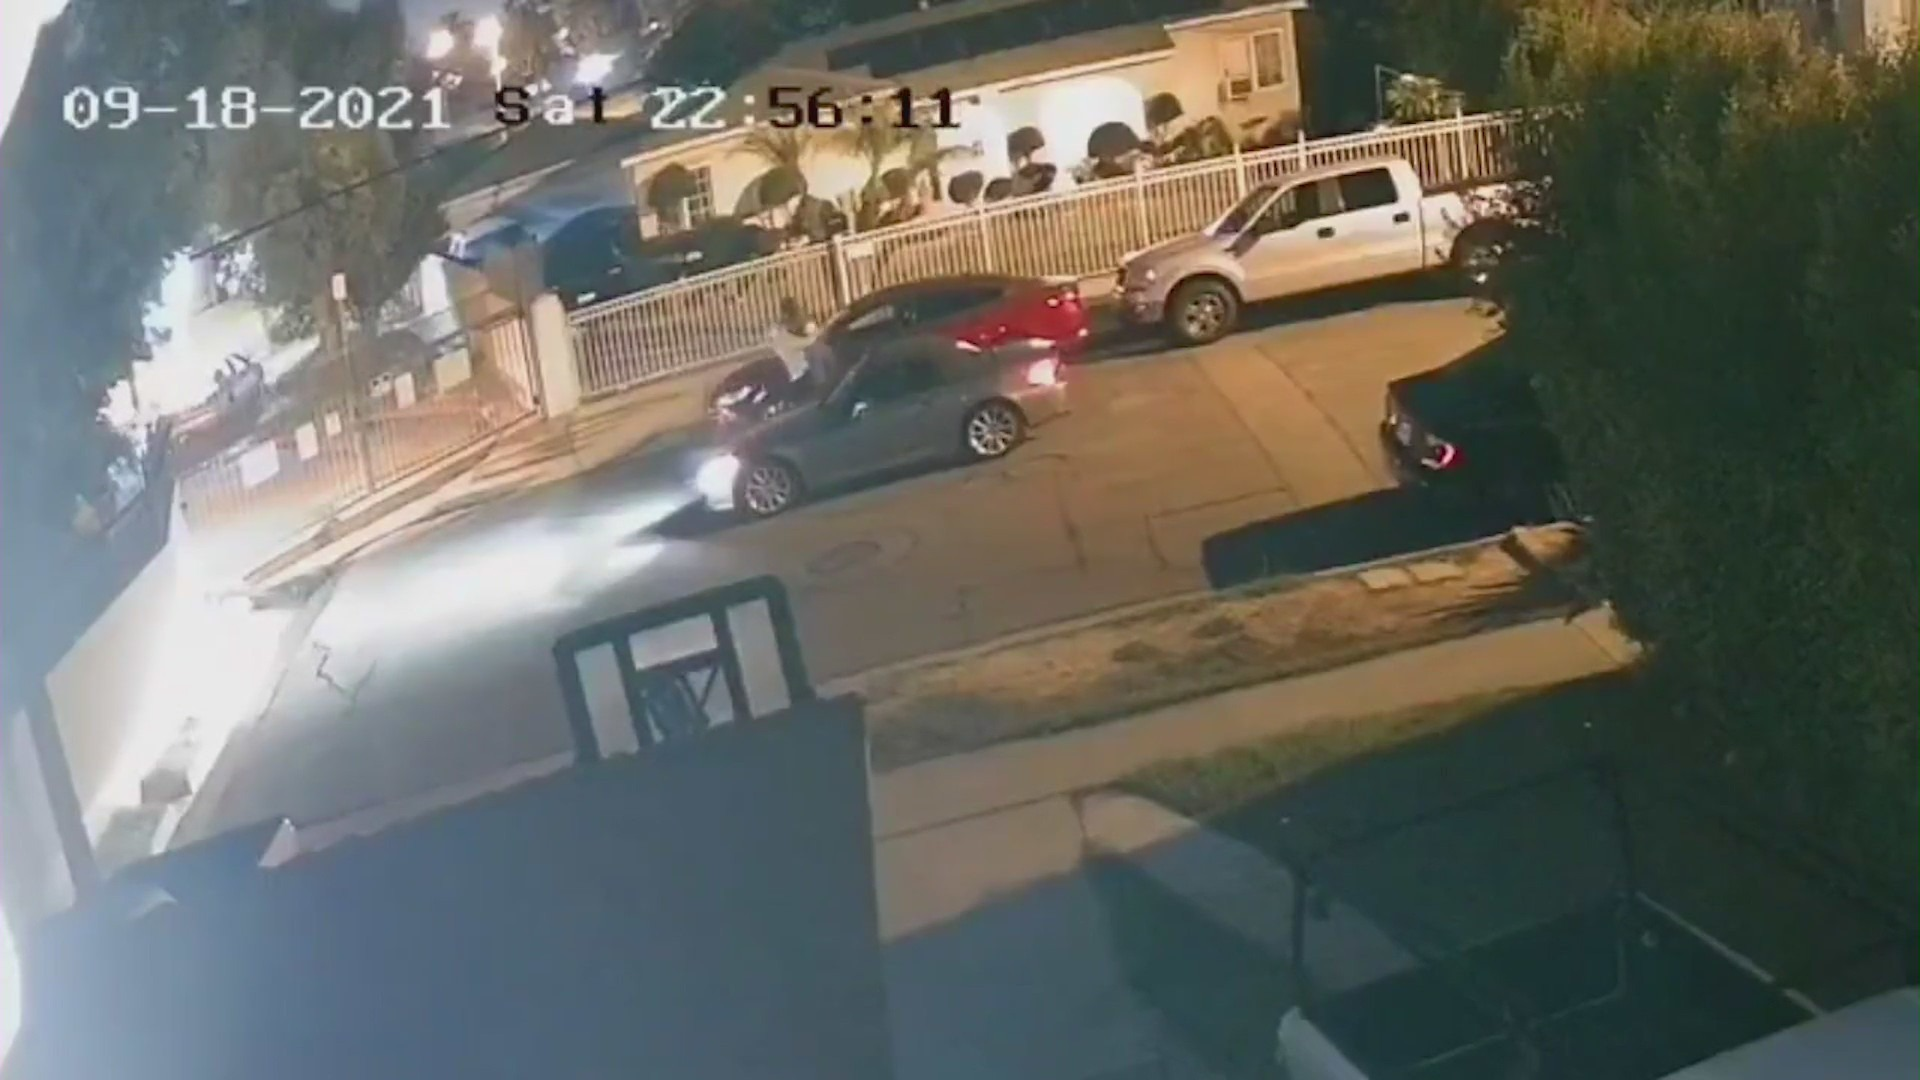 Surveillance video released by police shows the possible abduction of a woman in Bell gardens on Sept. 18, 2021.